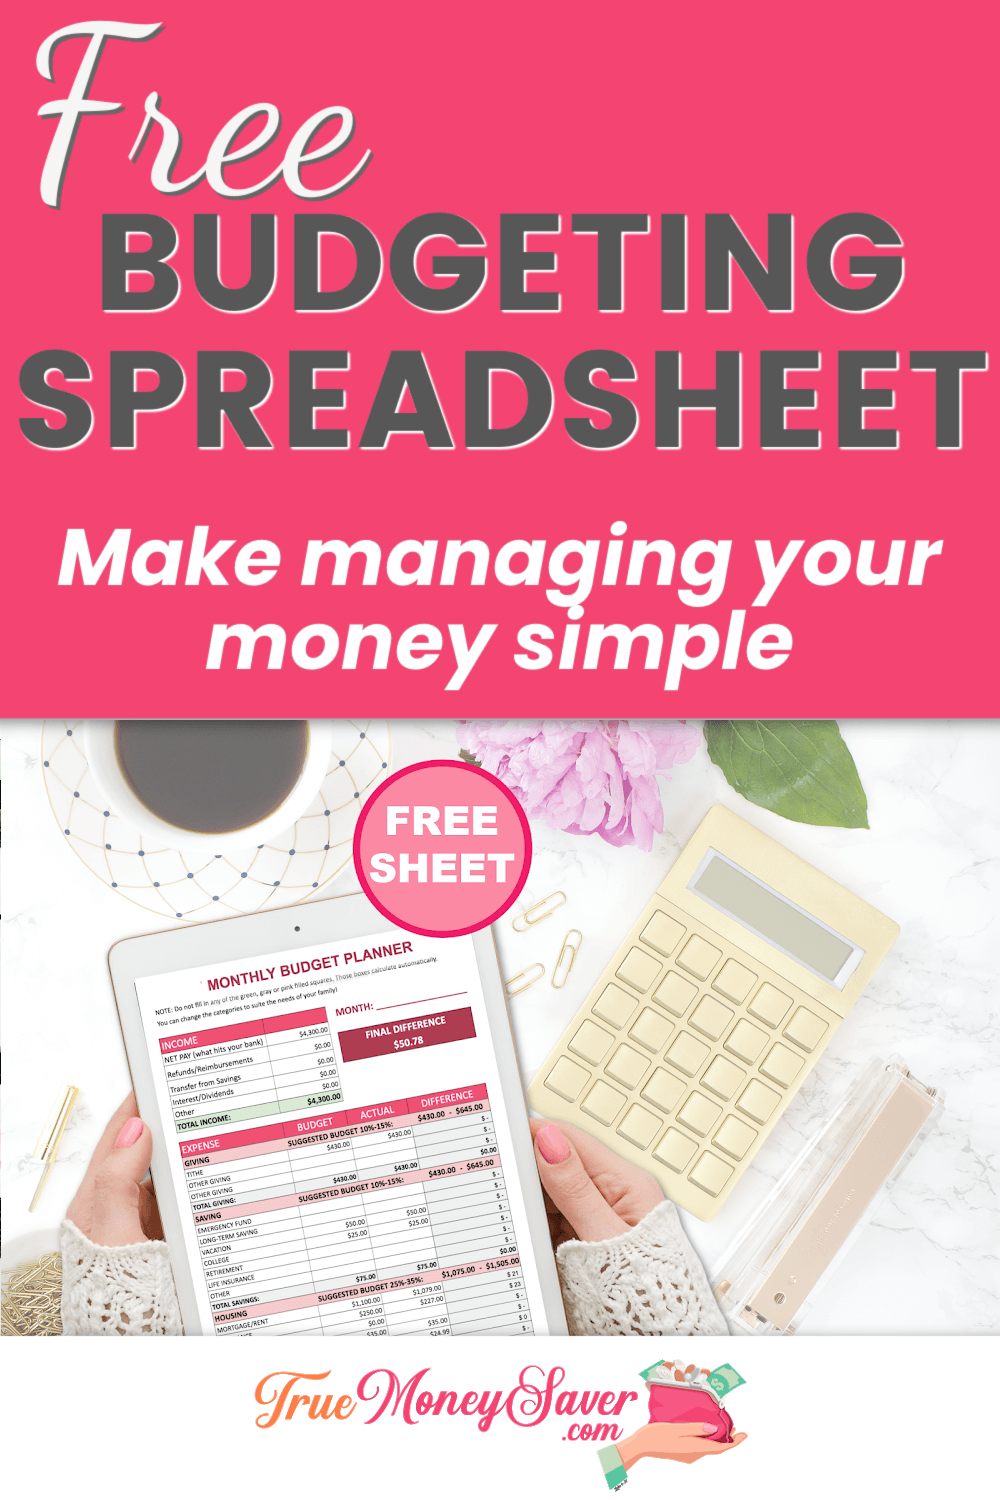 FREE Budgeting Sheets To Manage Your Money